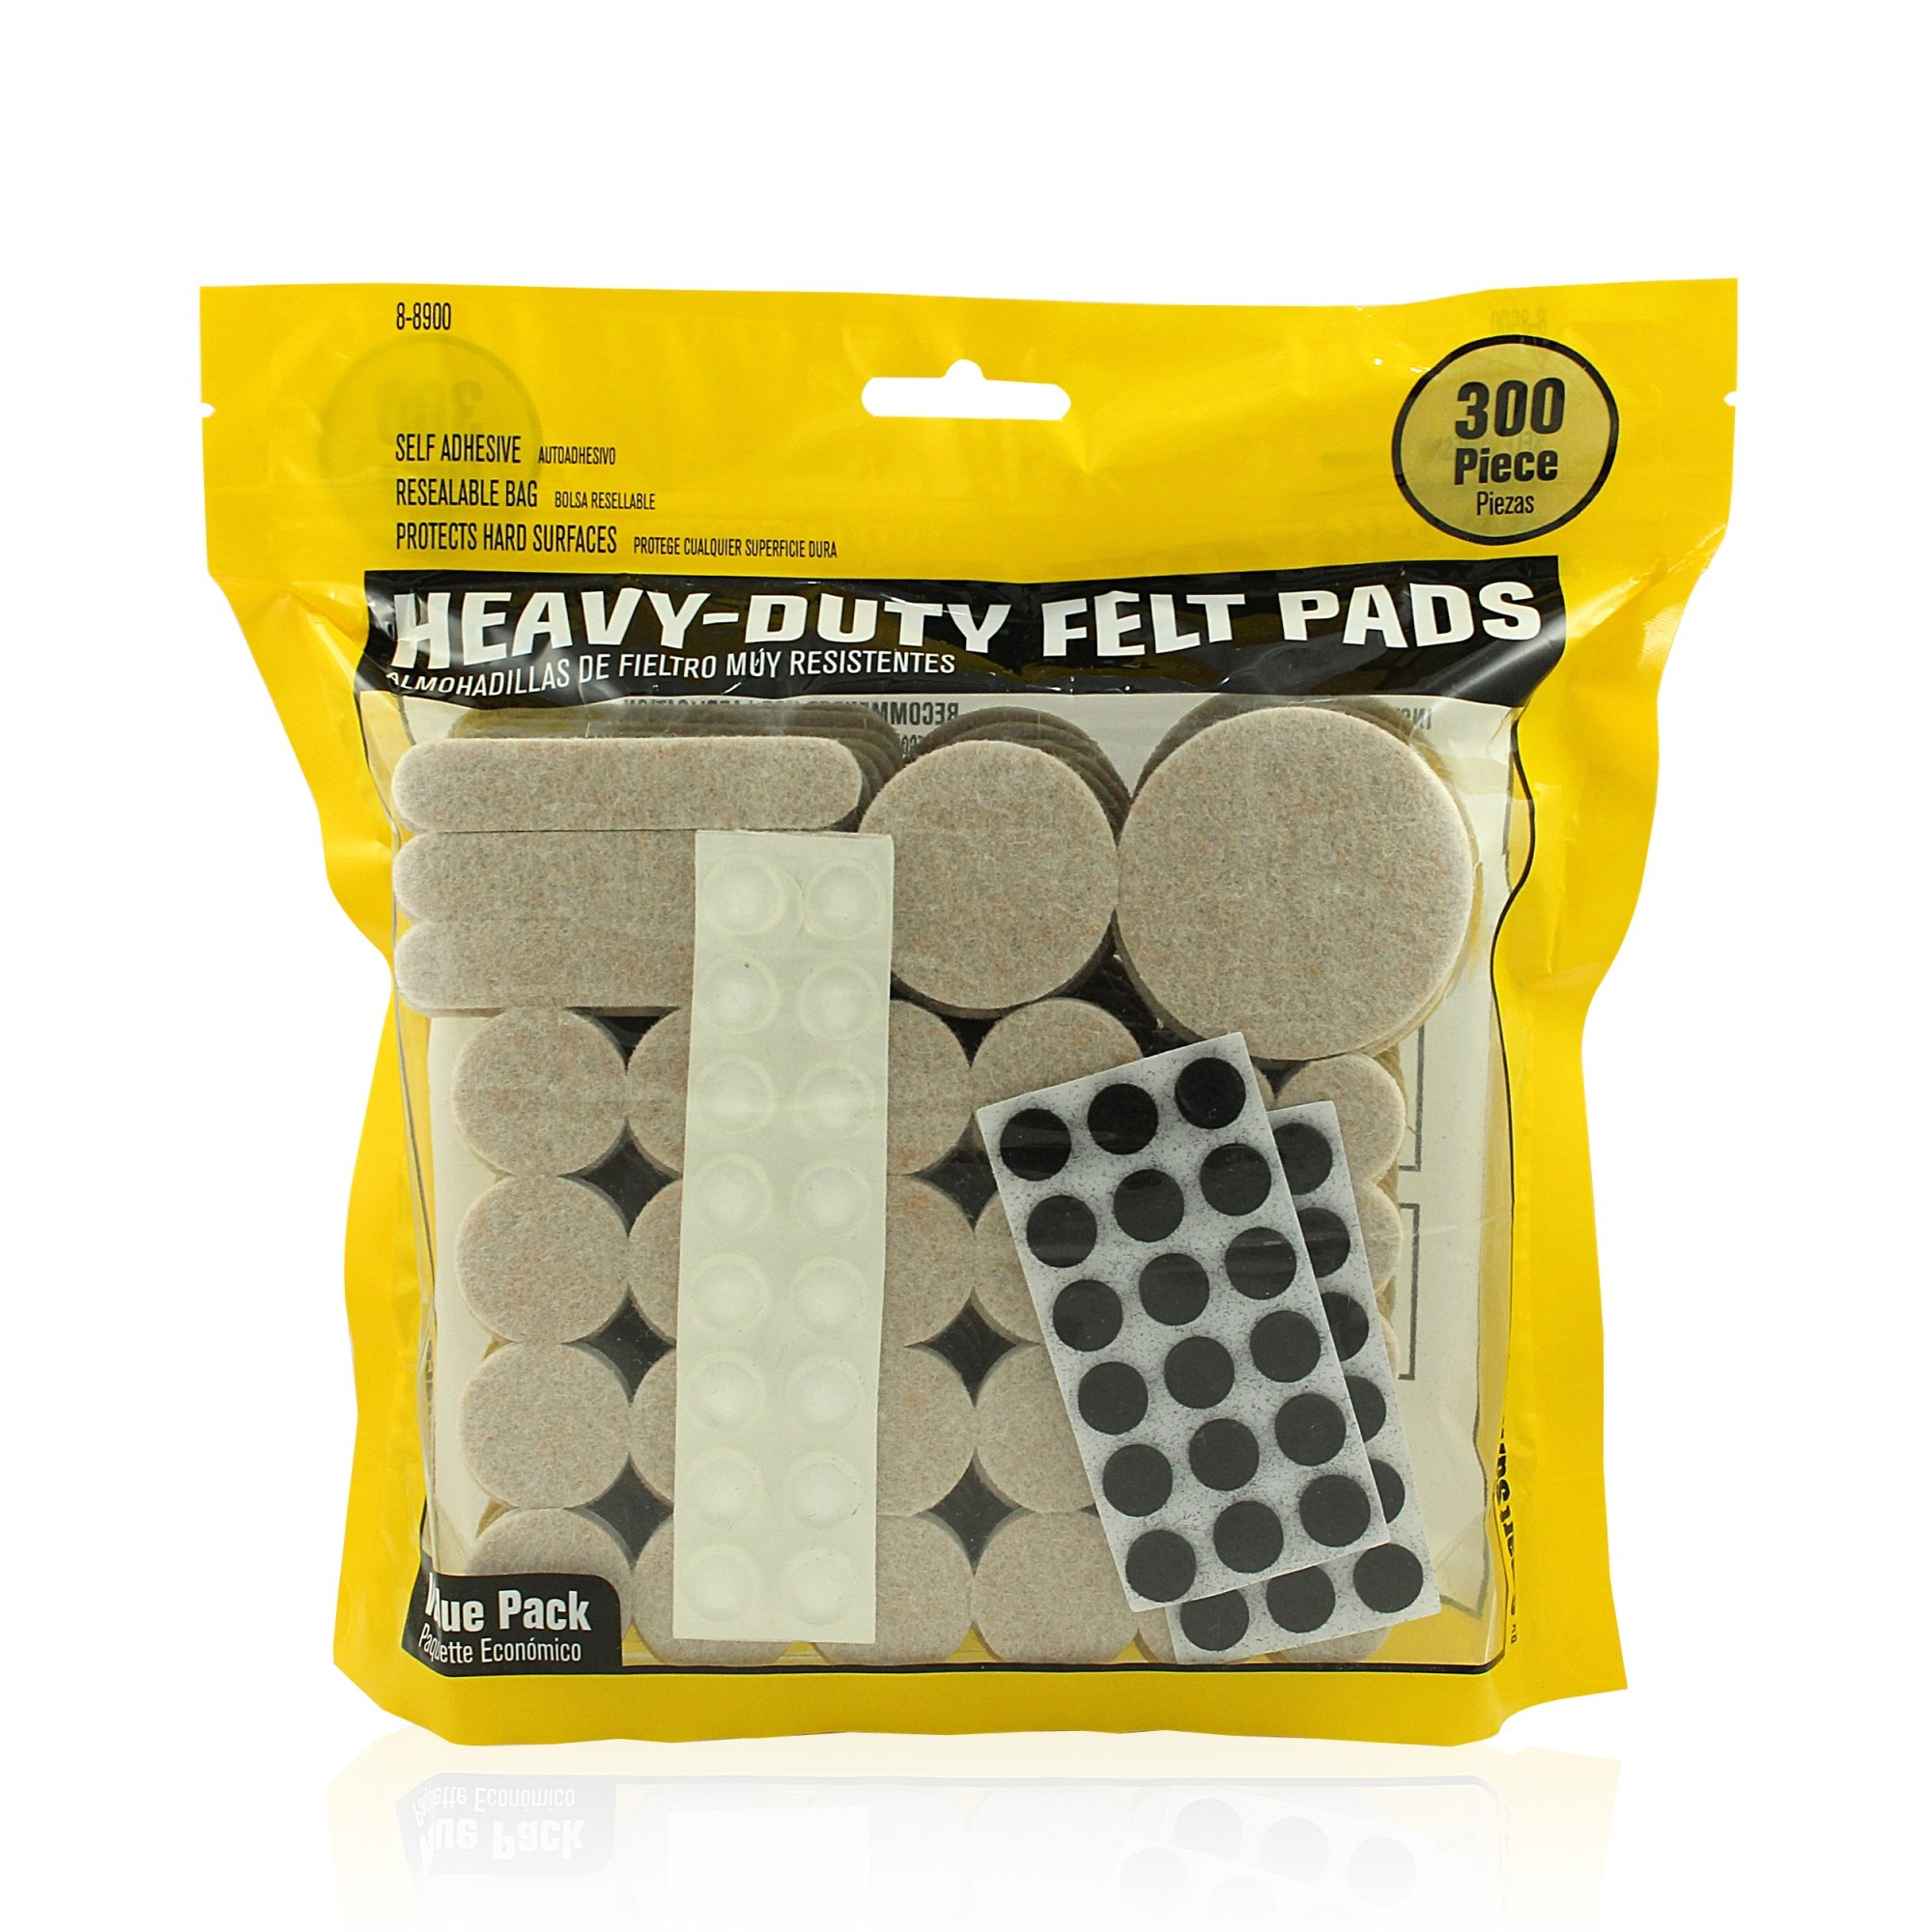 Smart Surface 8900 Heavy Duty Self Adhesive Furniture Felt Pads 300-Piece Value Variety Pack in Resealable Bag